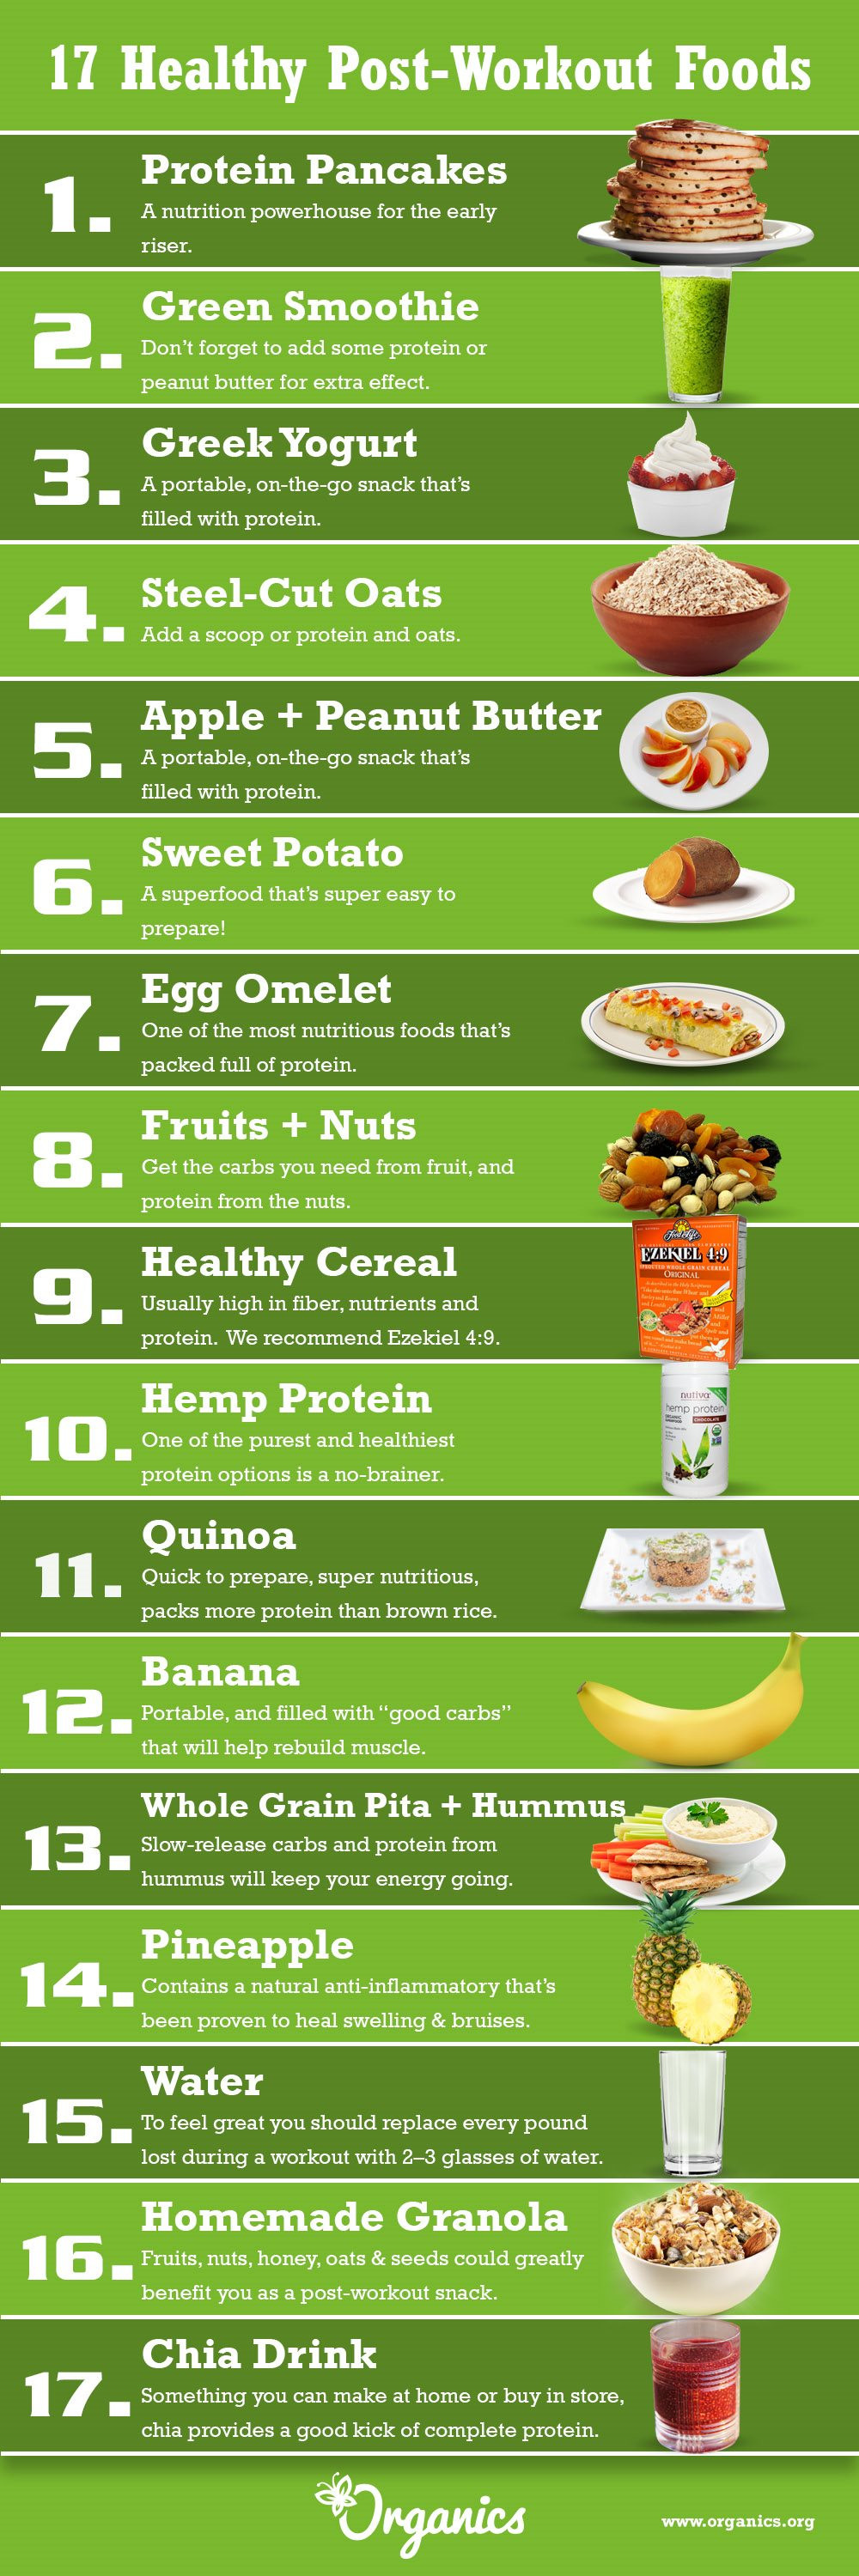 Healthy Post Workout Snacks  17 Healthiest Post Workout Foods